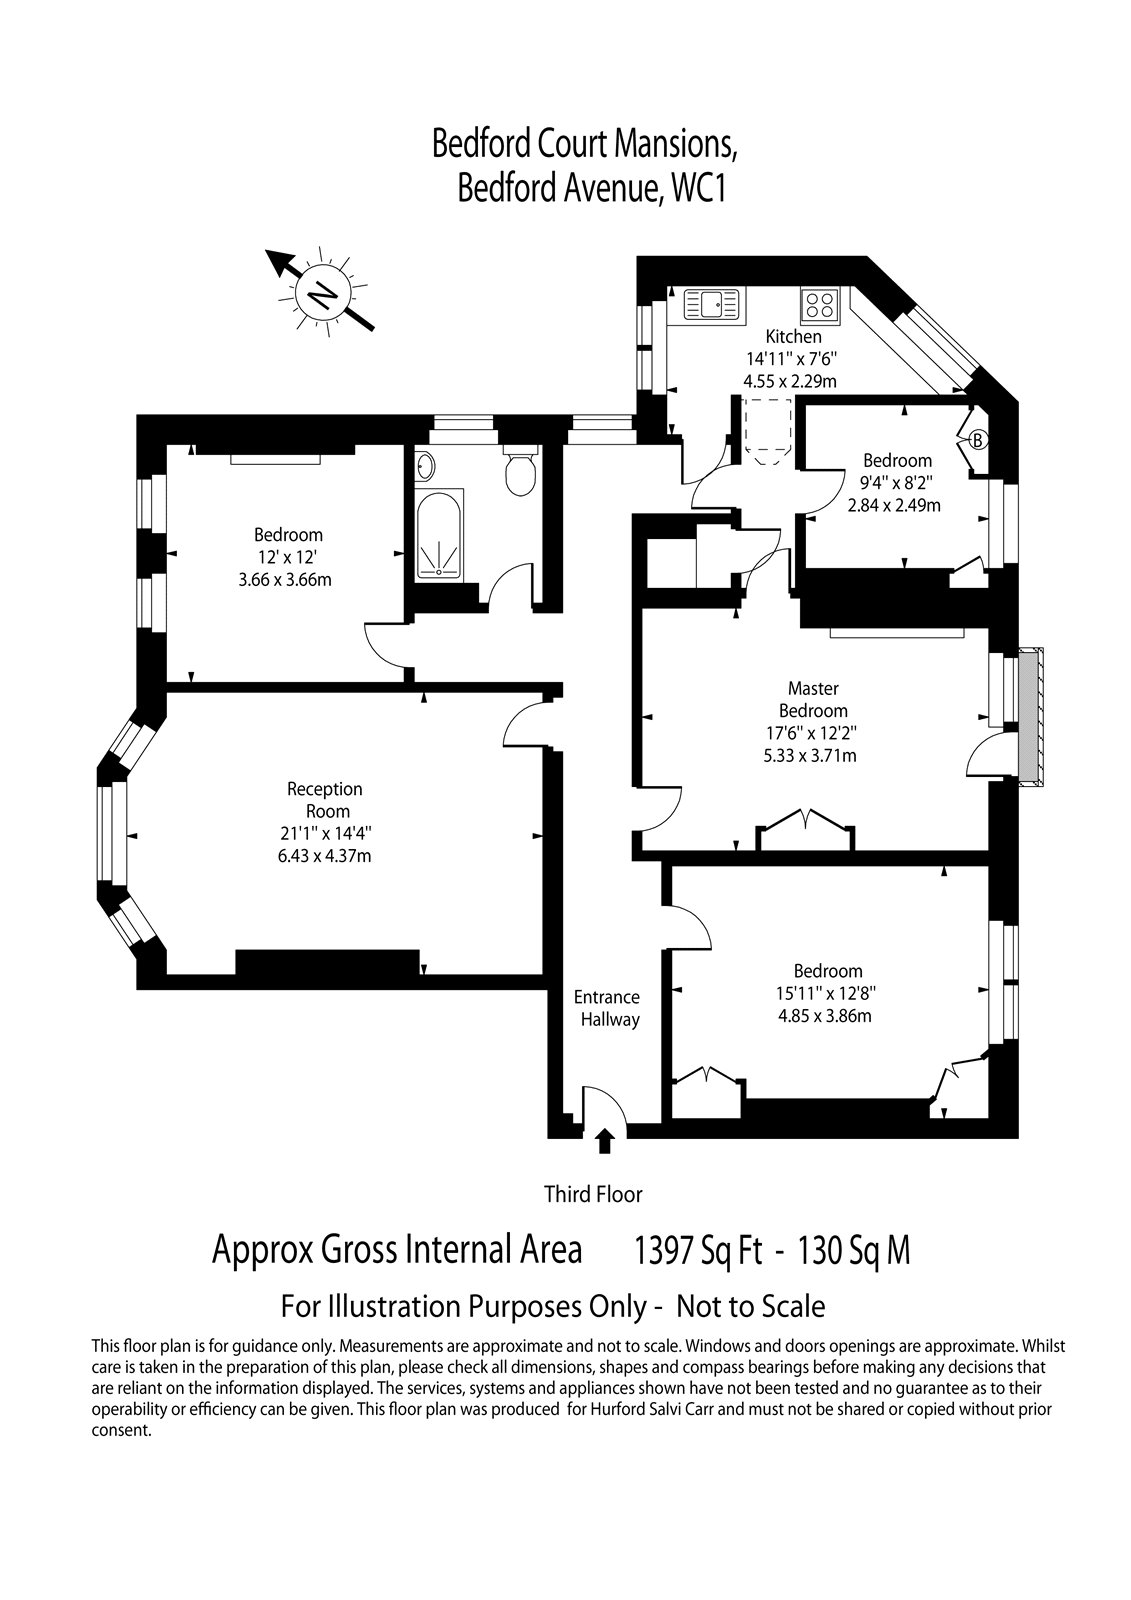 Bedford Court Mansions, Bedford Avenue, London, WC1B floorplan